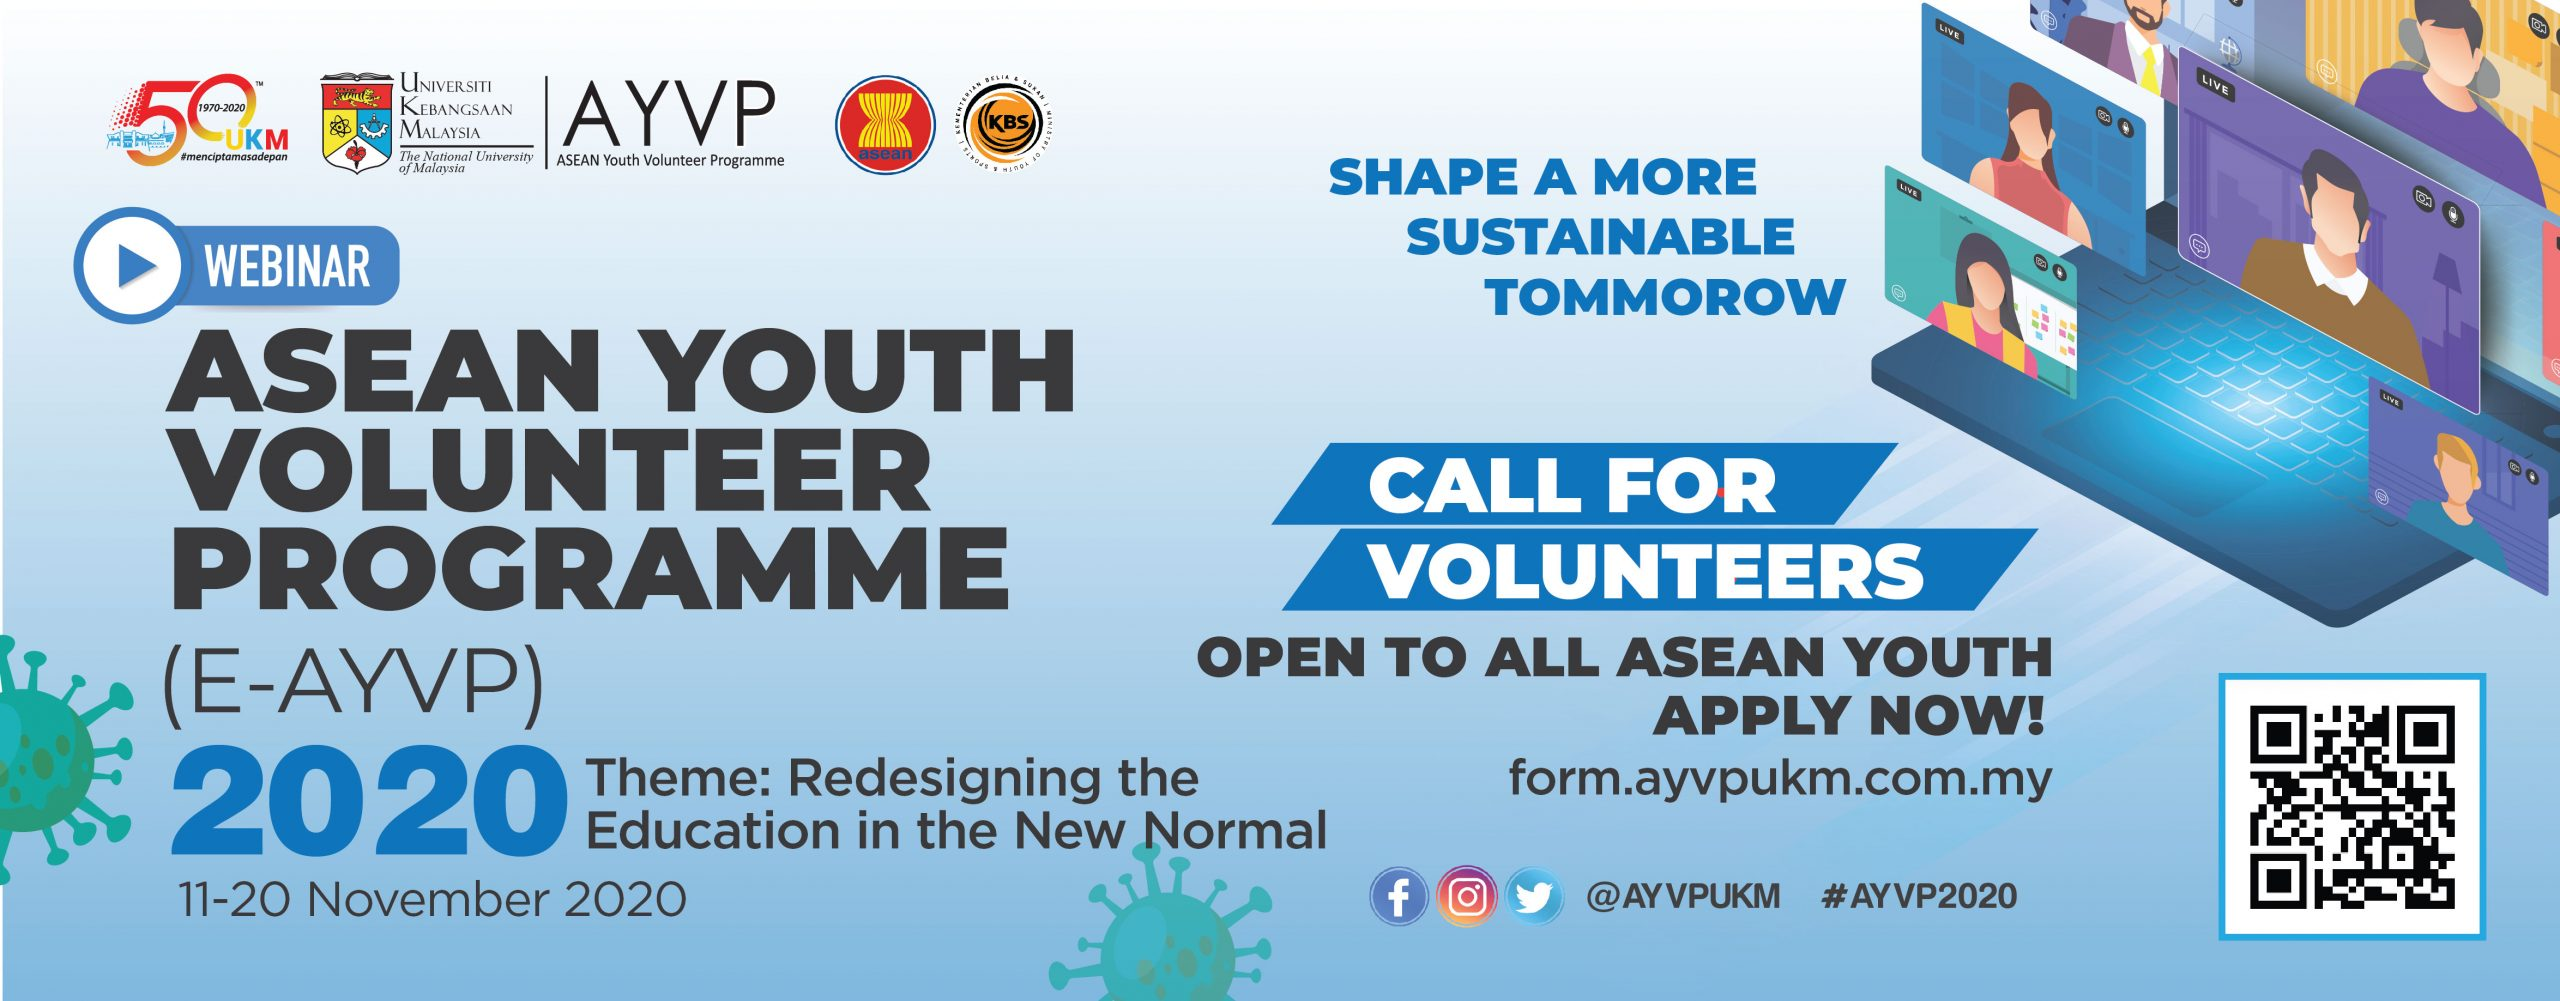 Call for Volunteer E-AYVP 2020